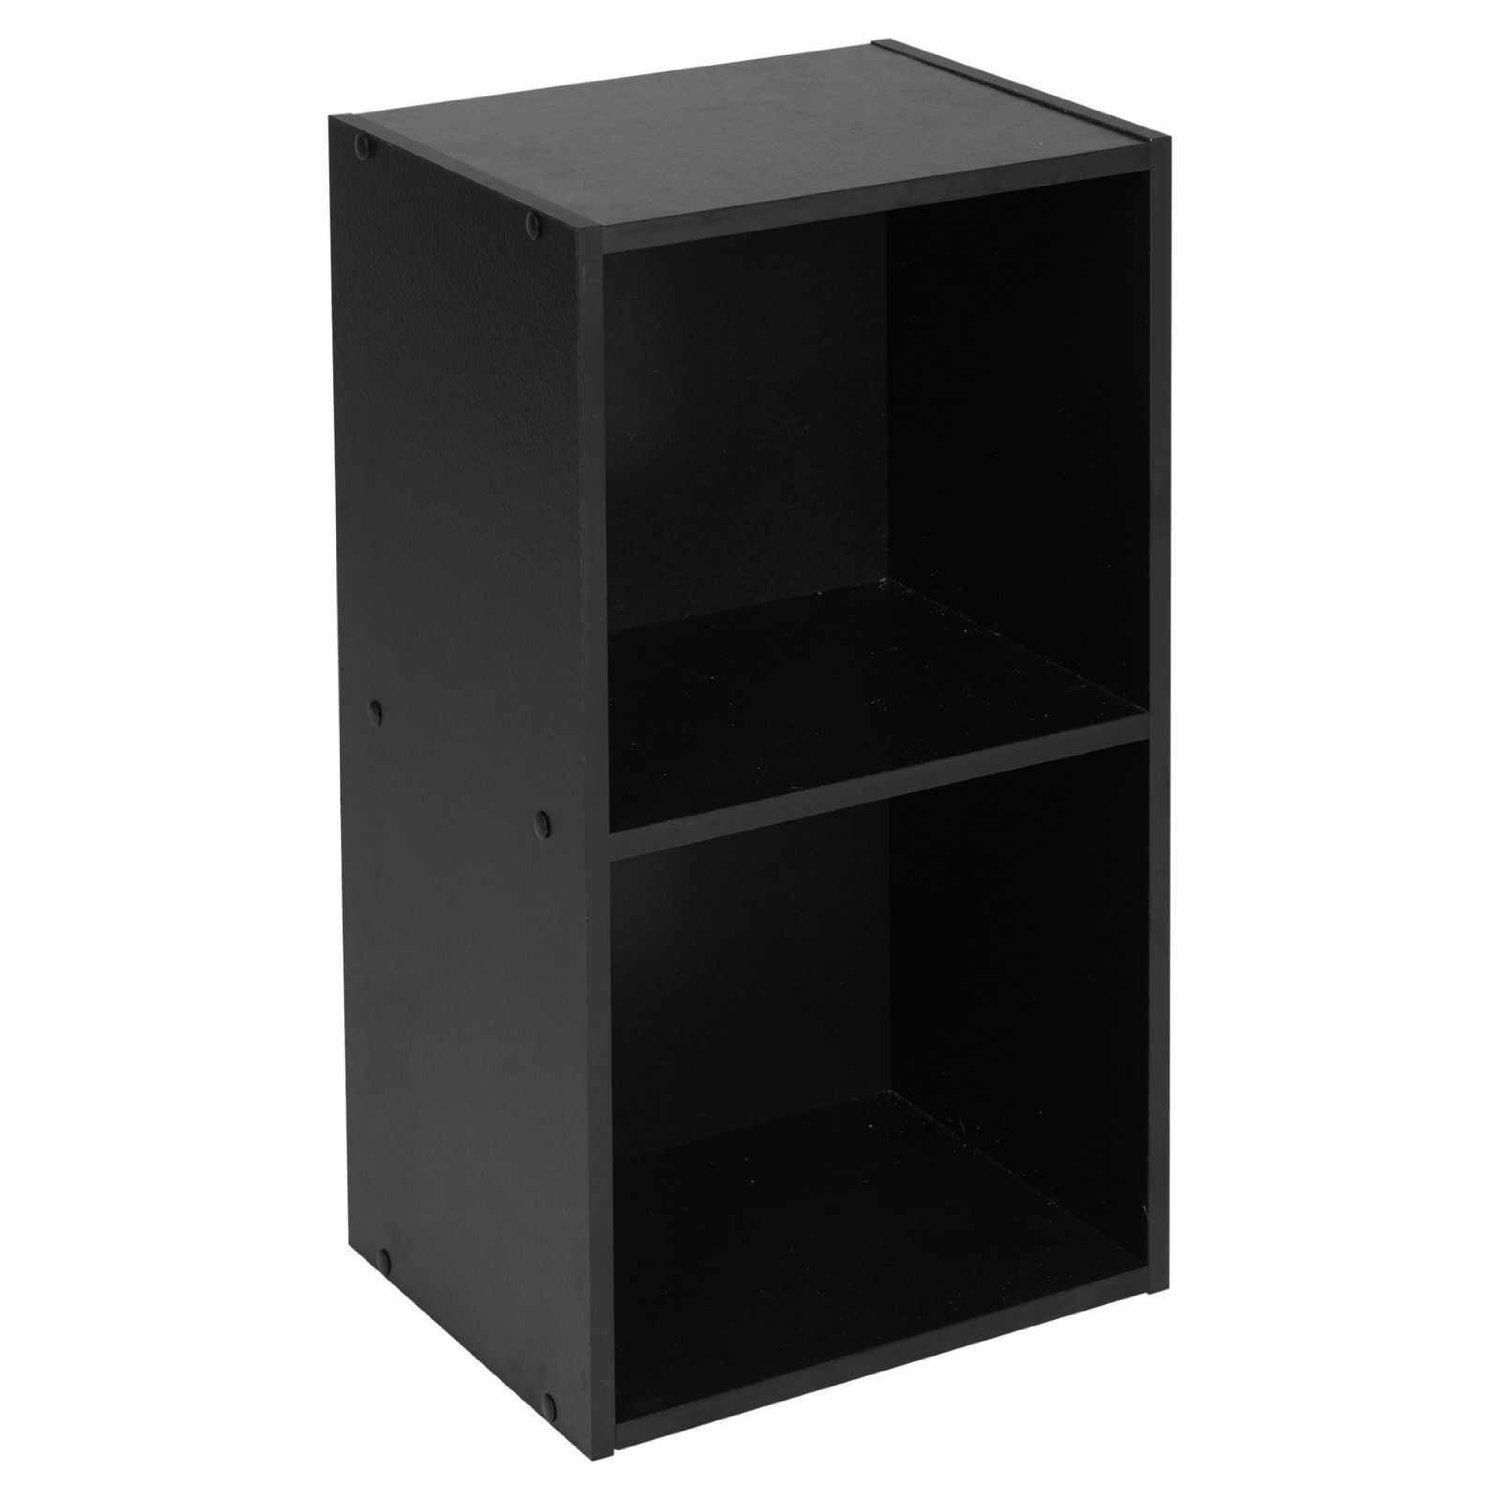 Wooden-Storage-Unit-Cube-2-3-4-Tier-Strong-Bookcase-Shelving-Home-Office-Display thumbnail 15